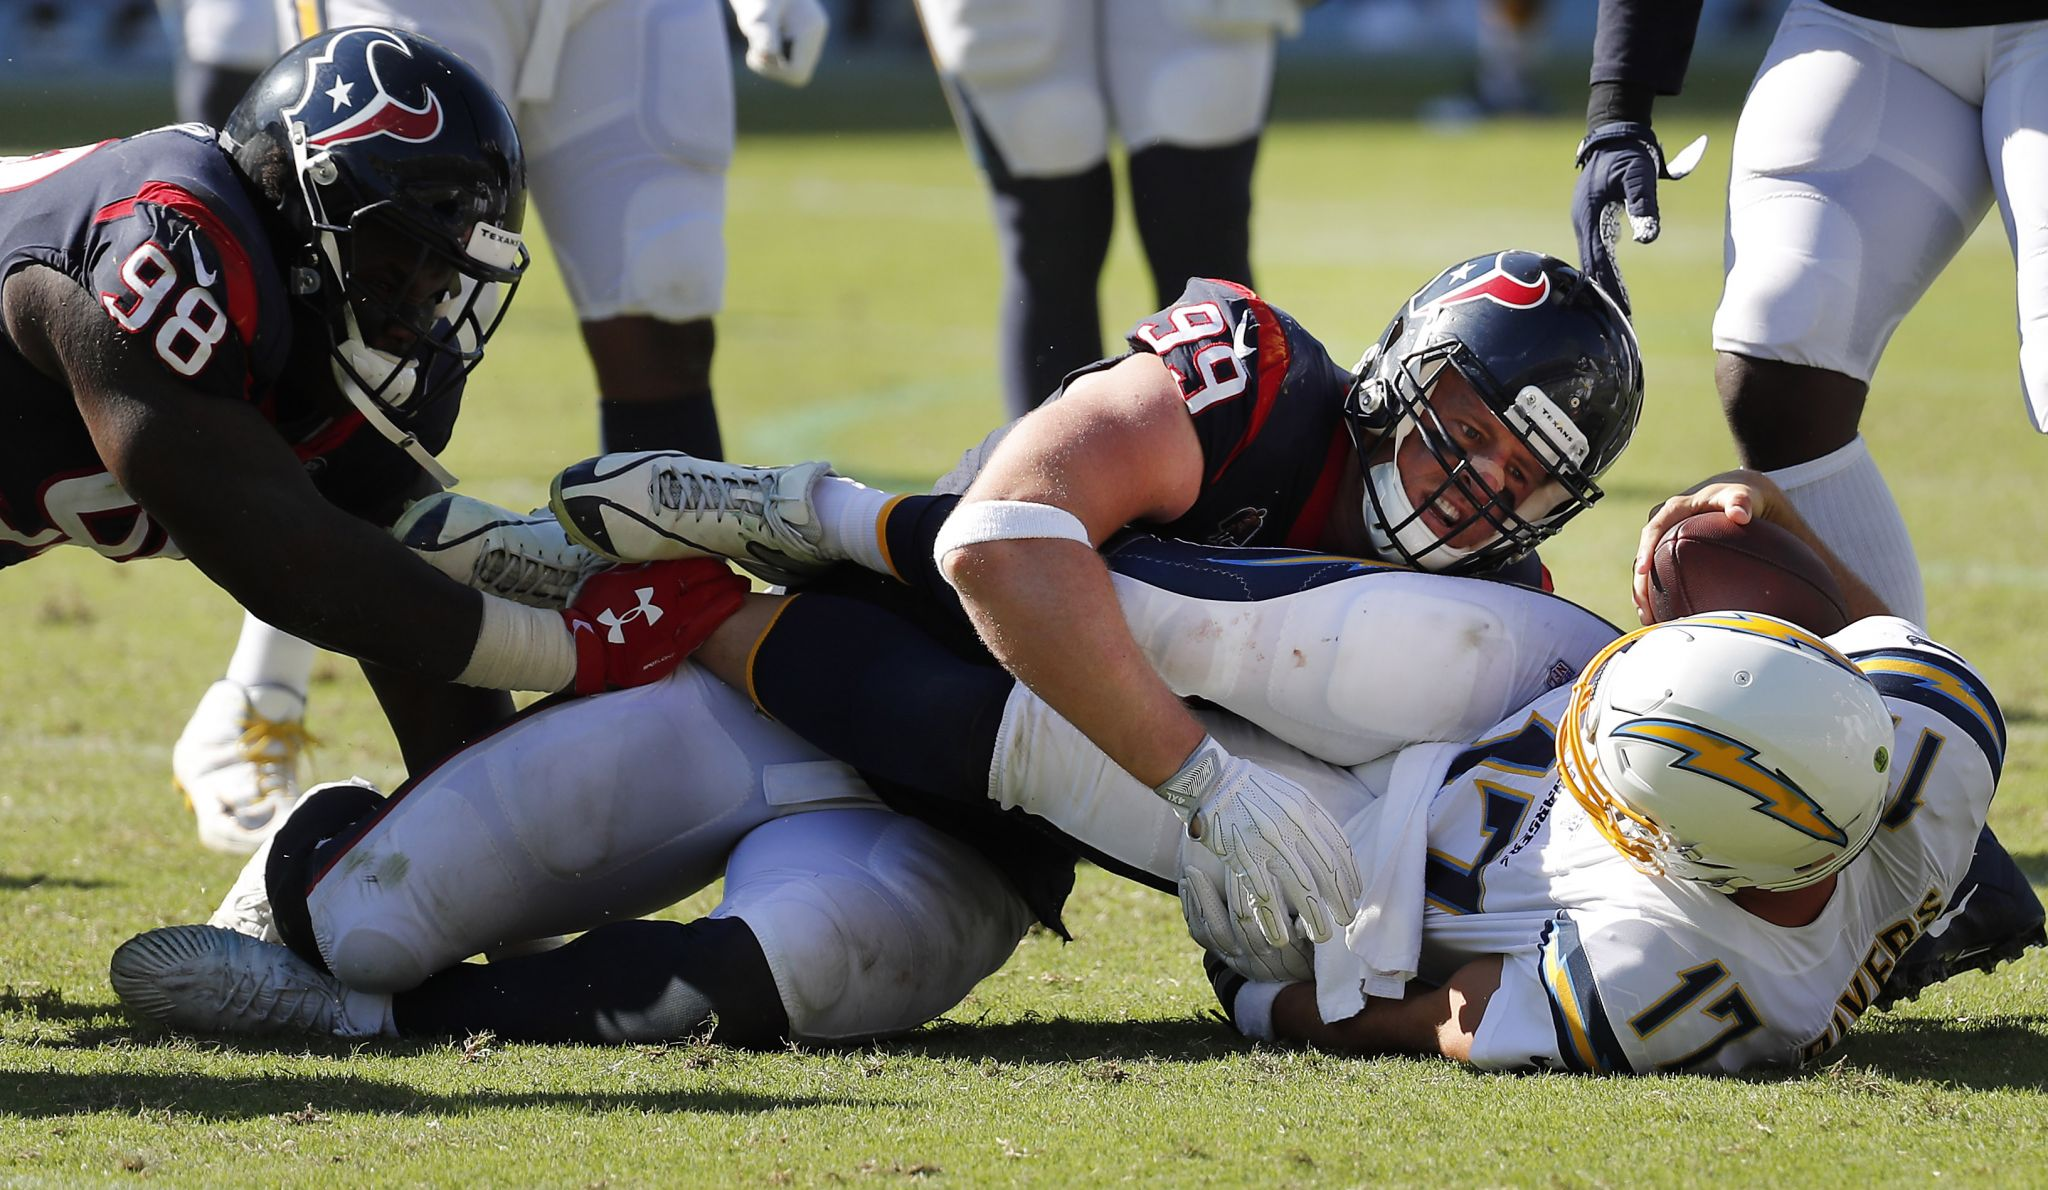 Texans takeaways: The good kind of sacks pace